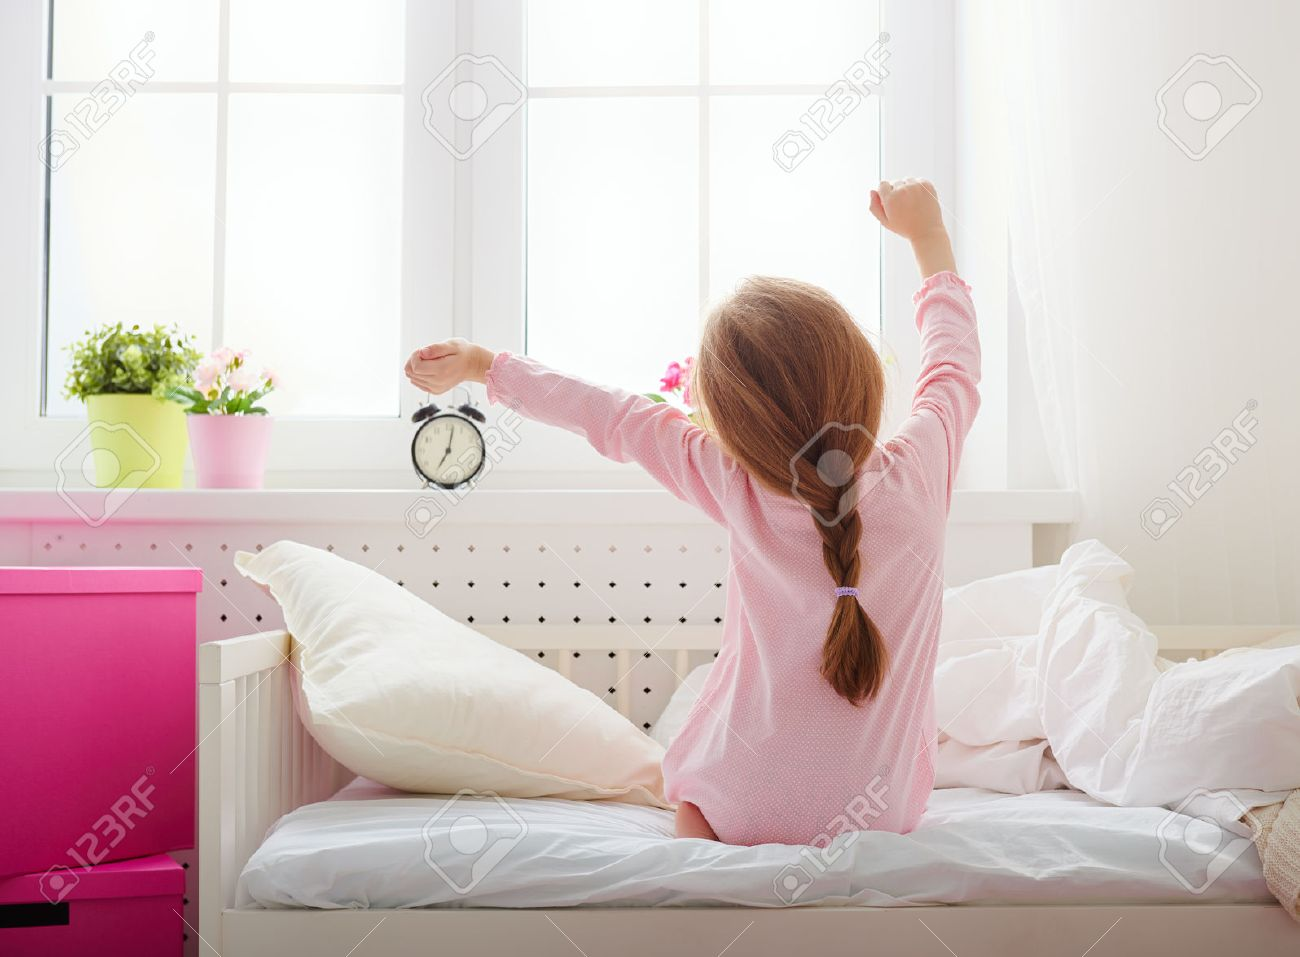 Image result for pictures of kids waking up in the morning